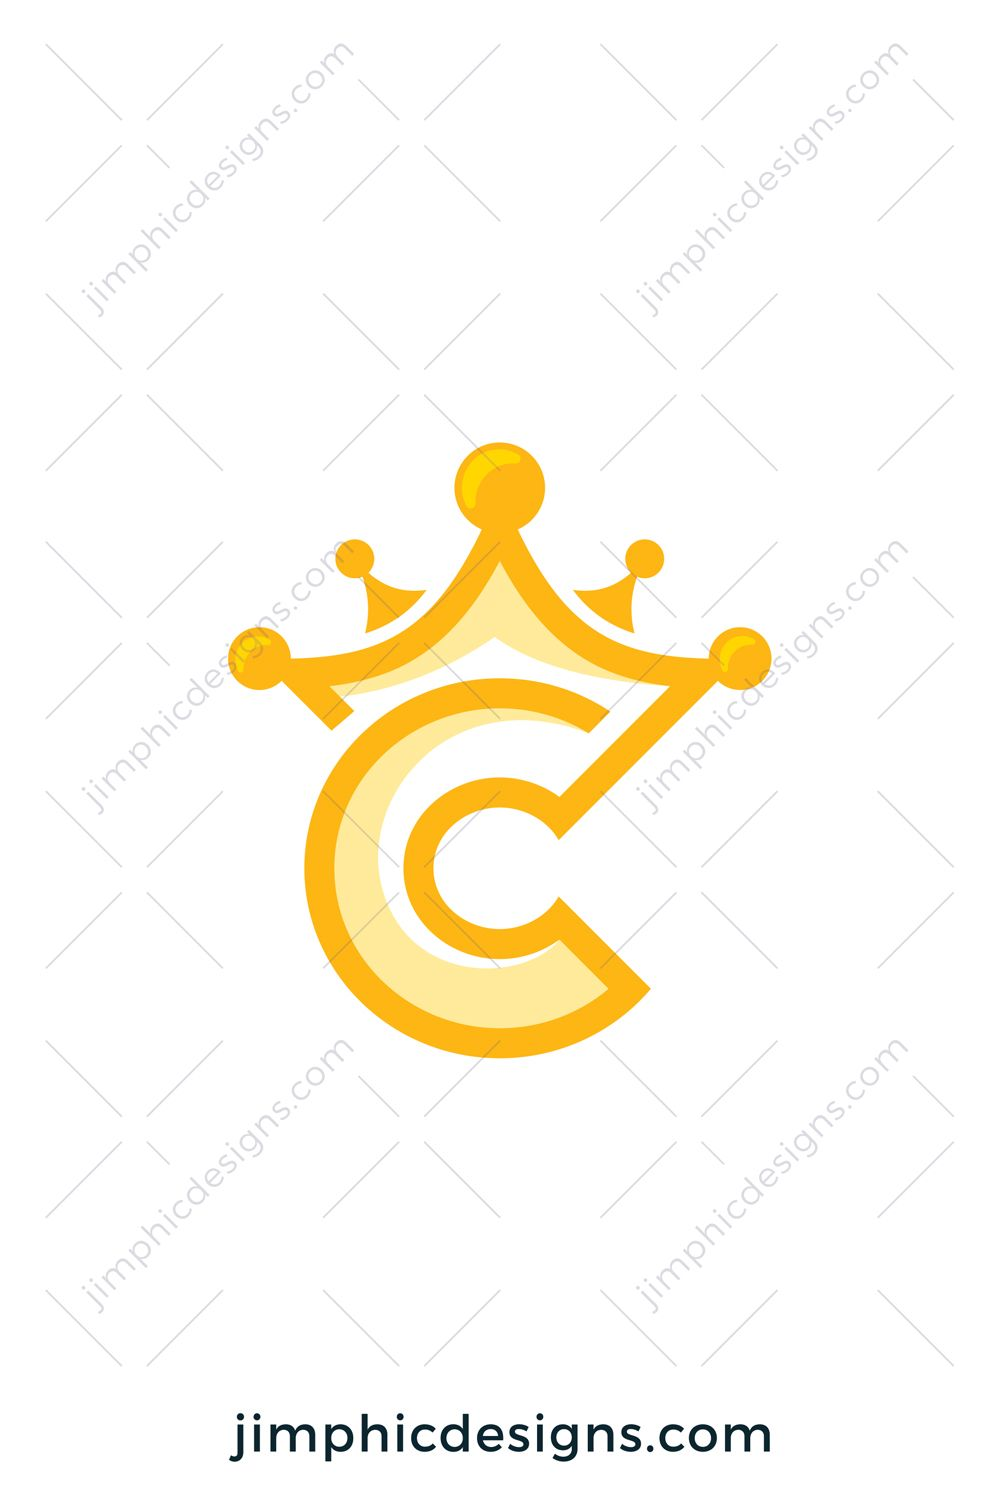 C With A Crown : crown, Letter, Professional, Graphic, Design,, Website, Design, Services,, Lettering